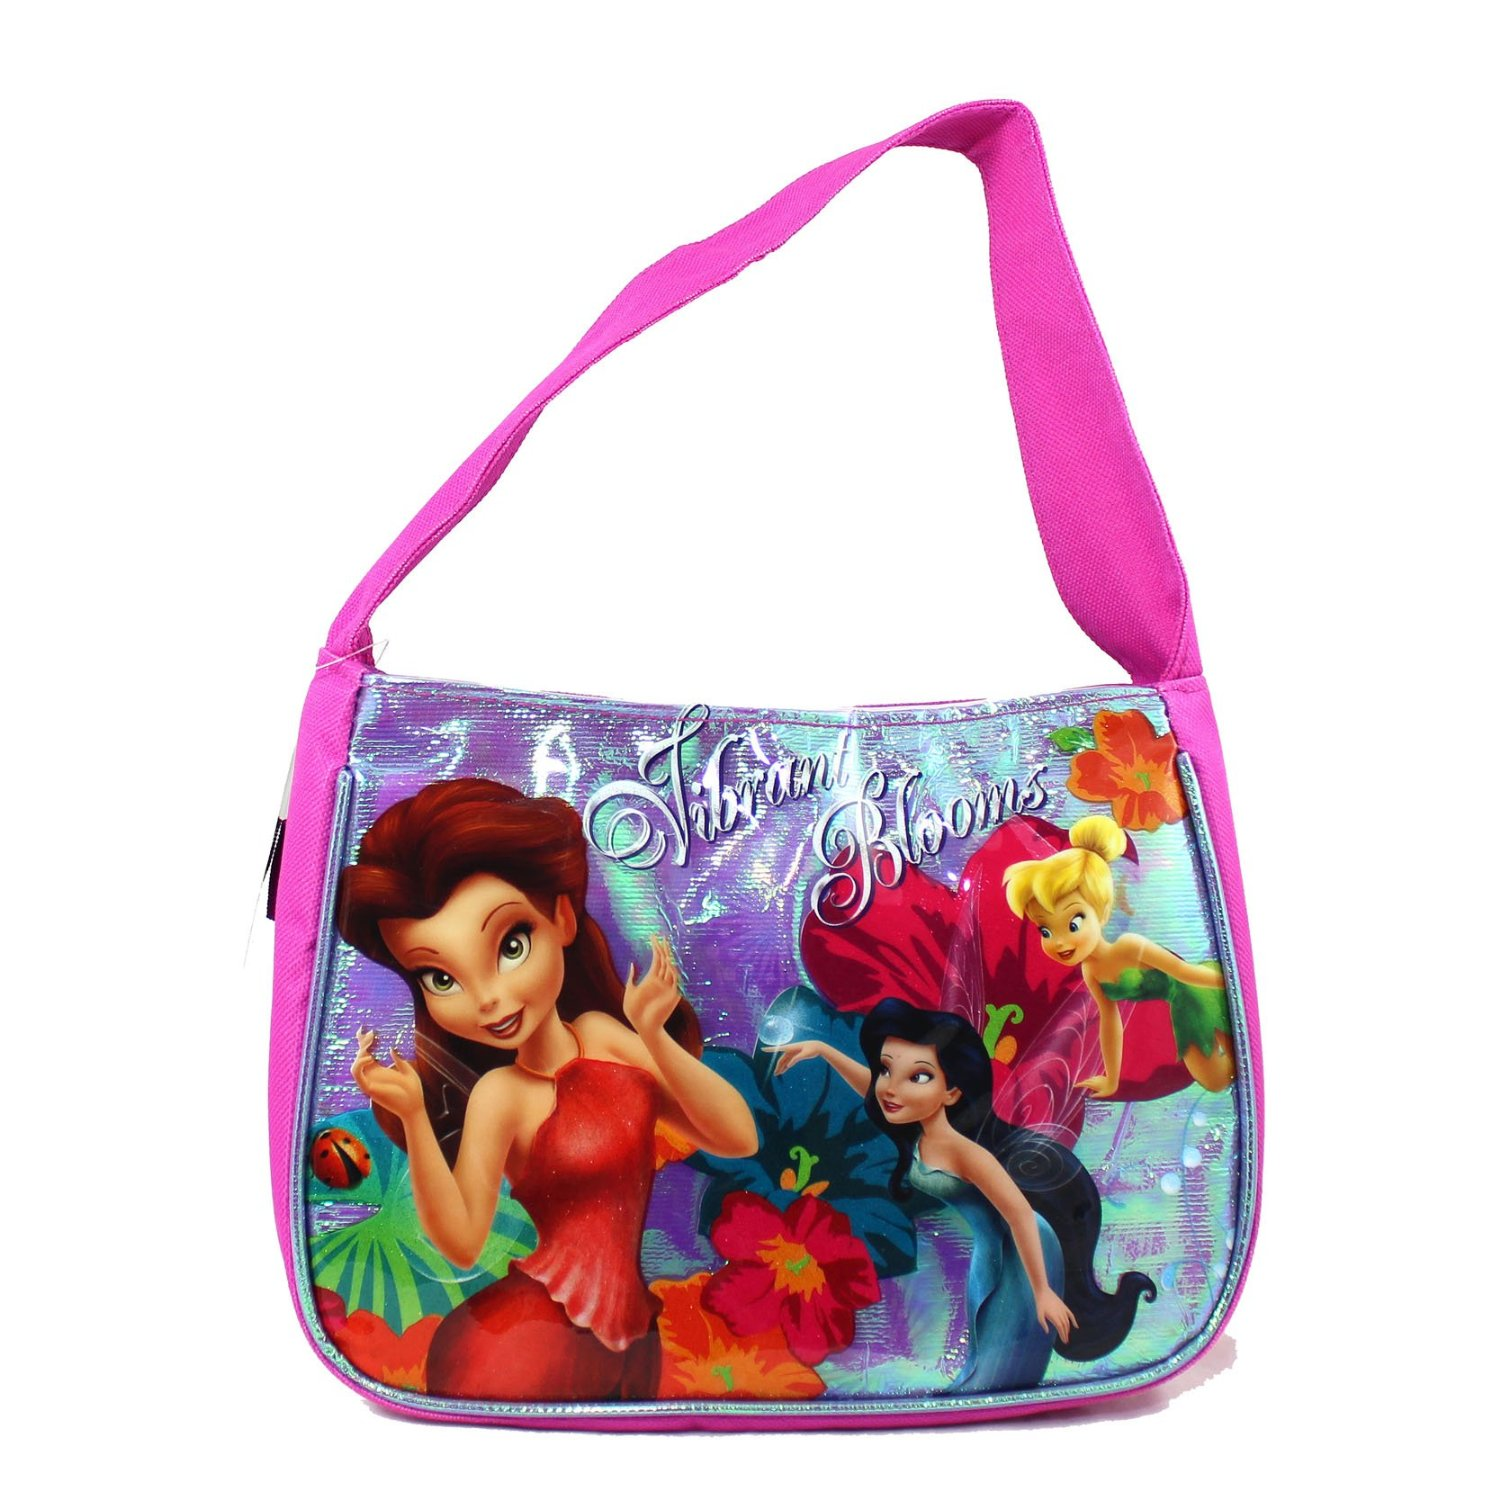 """Fast Forward New York Disney Fairies Series """" Tinker Bell and The Pixie Hollow Games"""" Single Compartment Soft Insulated Lunch Tote with Image of Rosetta, Silvermist and Tinker Bell (Bag Dimension: 9"""" x 6-1/2"""" x 3-1/2"""")"""